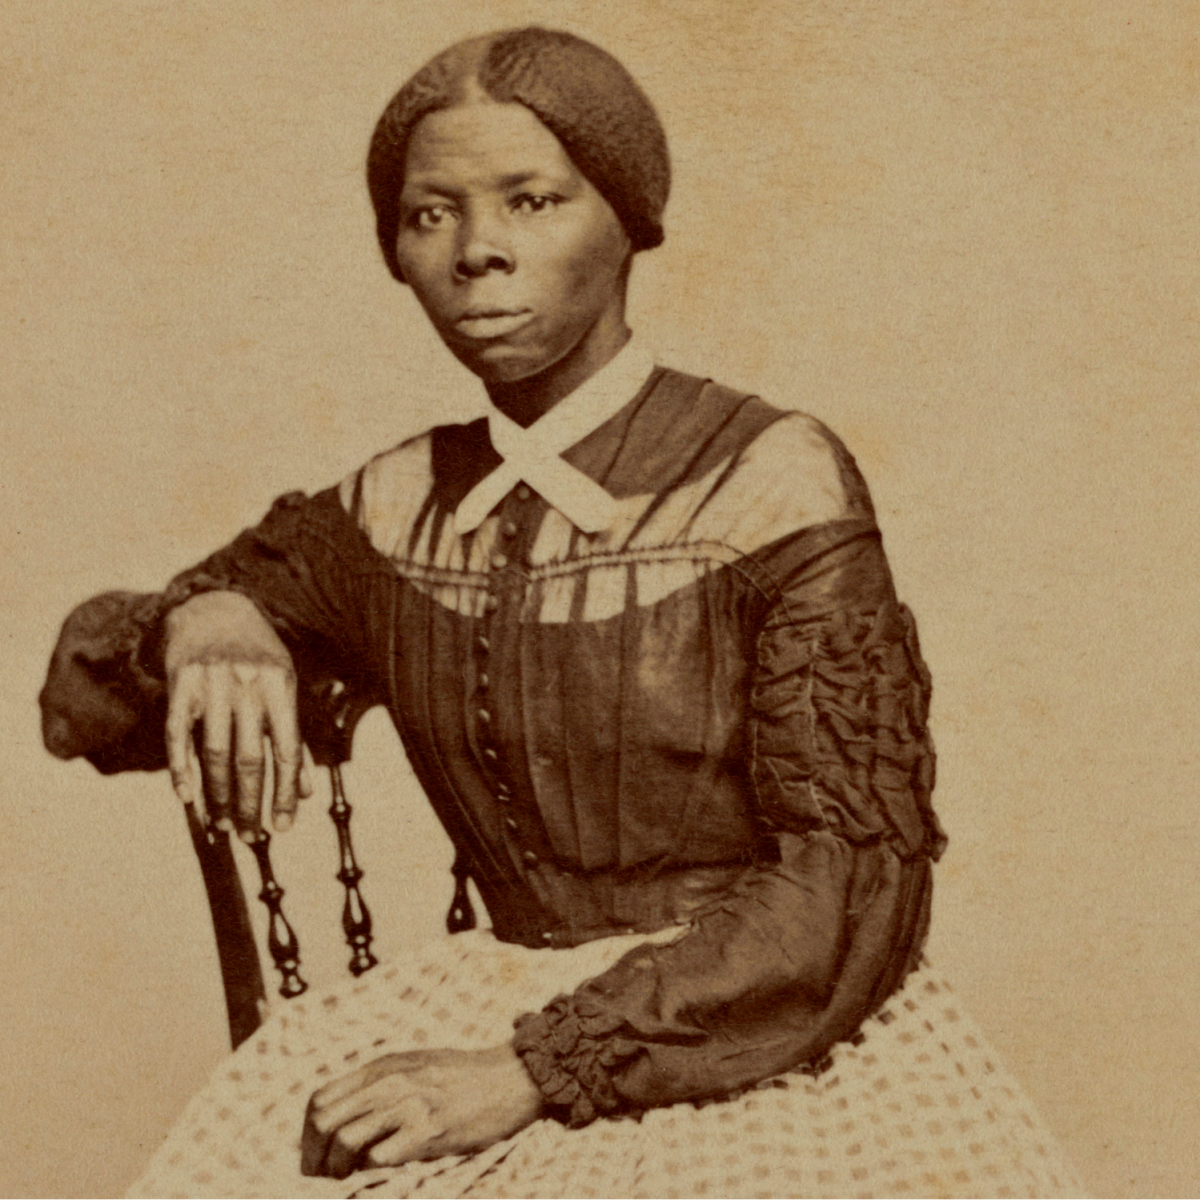 Archaeologists Discover Home Where Harriet Tubman Lived With Father